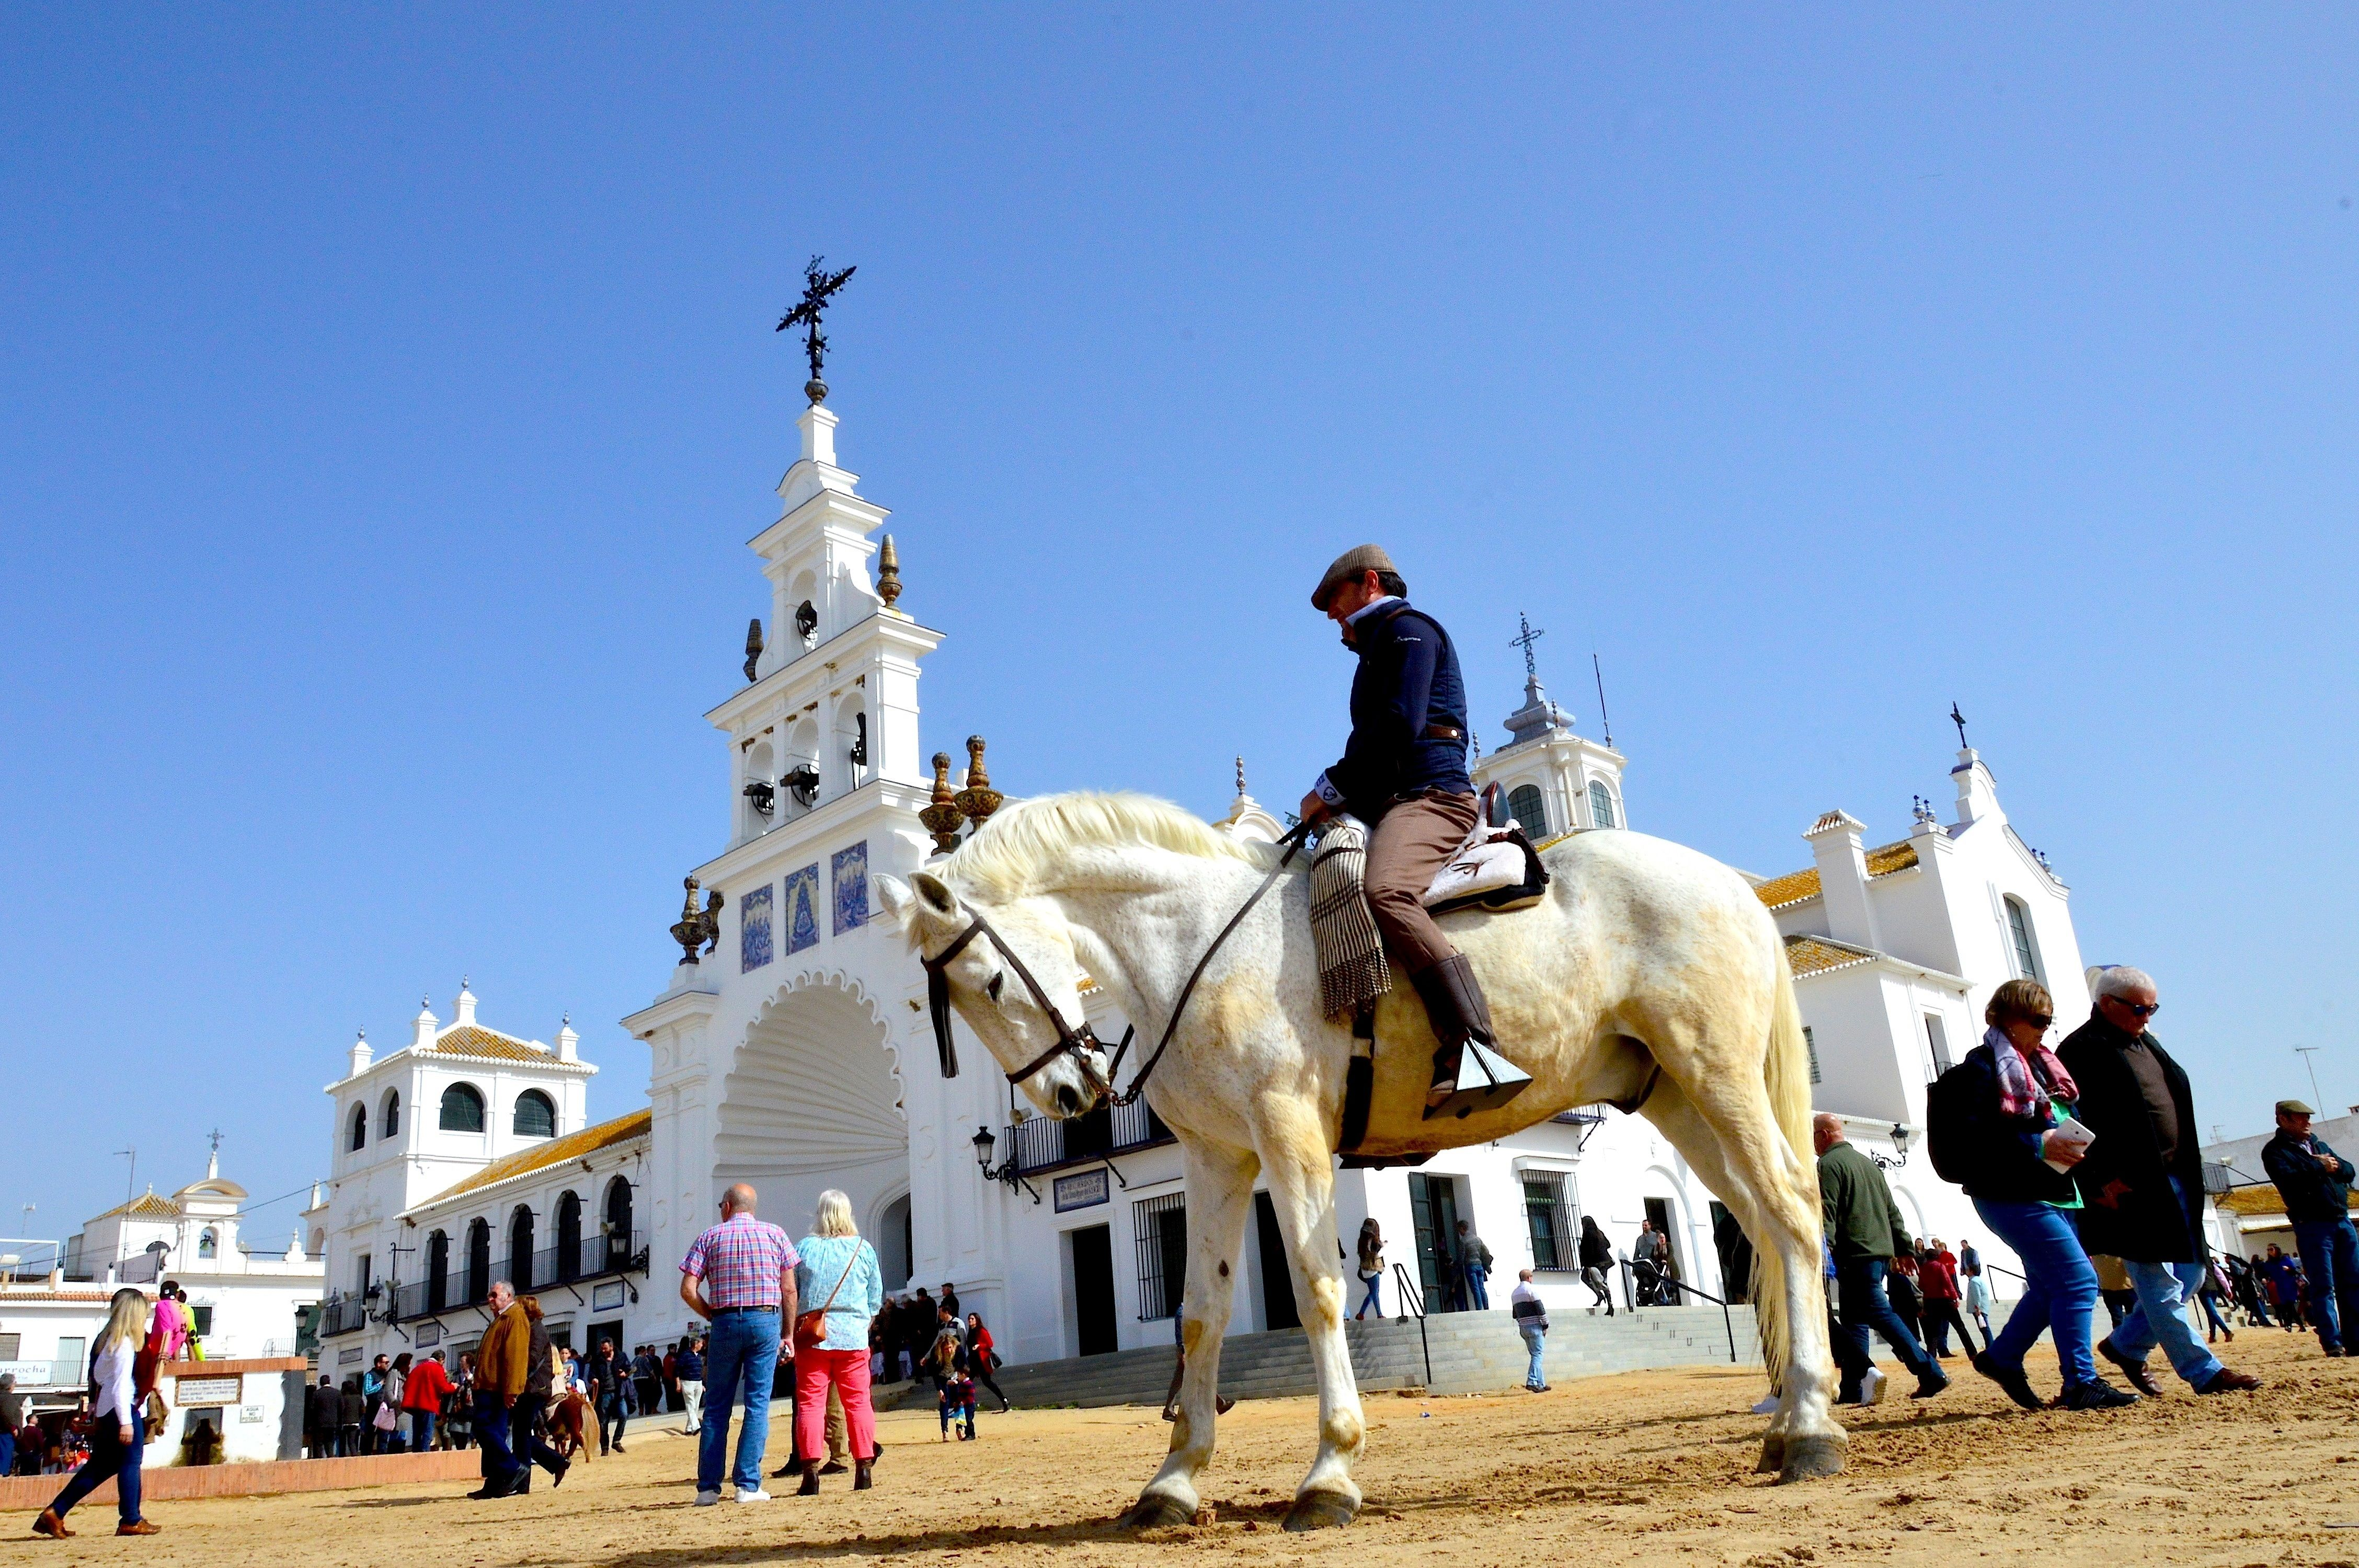 Lasse Persson - El Rocio in Andalucia, Spain, is a small village with wide, sandy streets, horse riding farmers and a frontier like feeling.